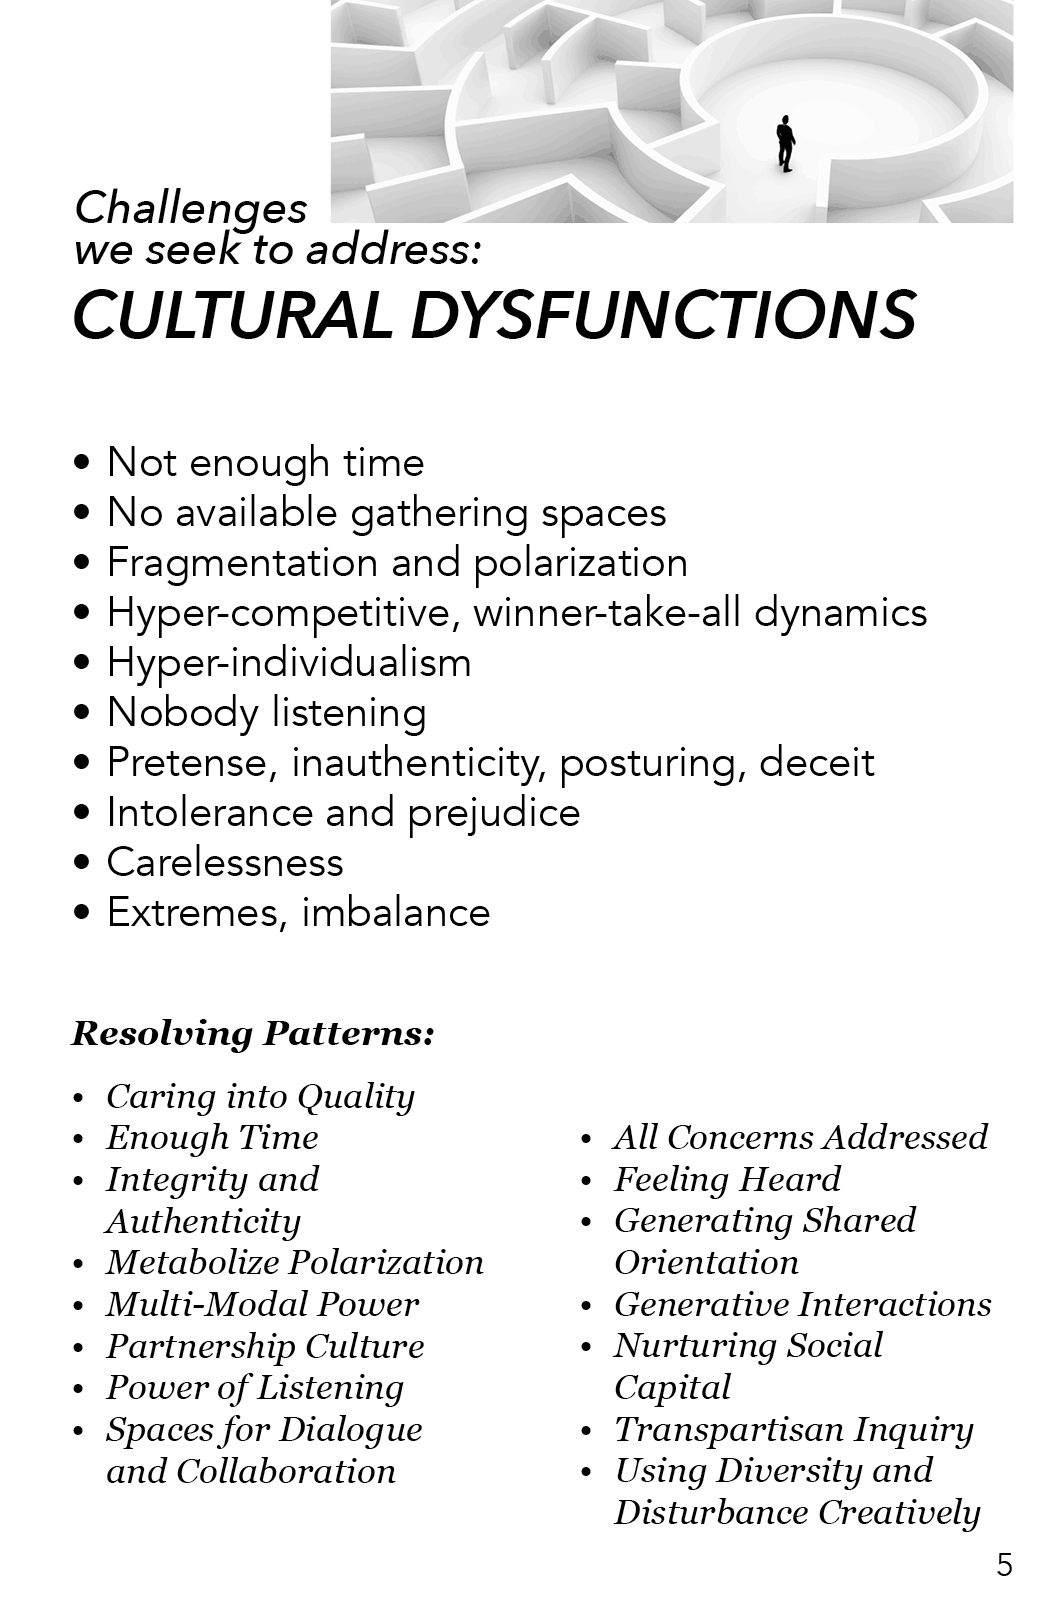 AAA - Cultural Dysfunctions